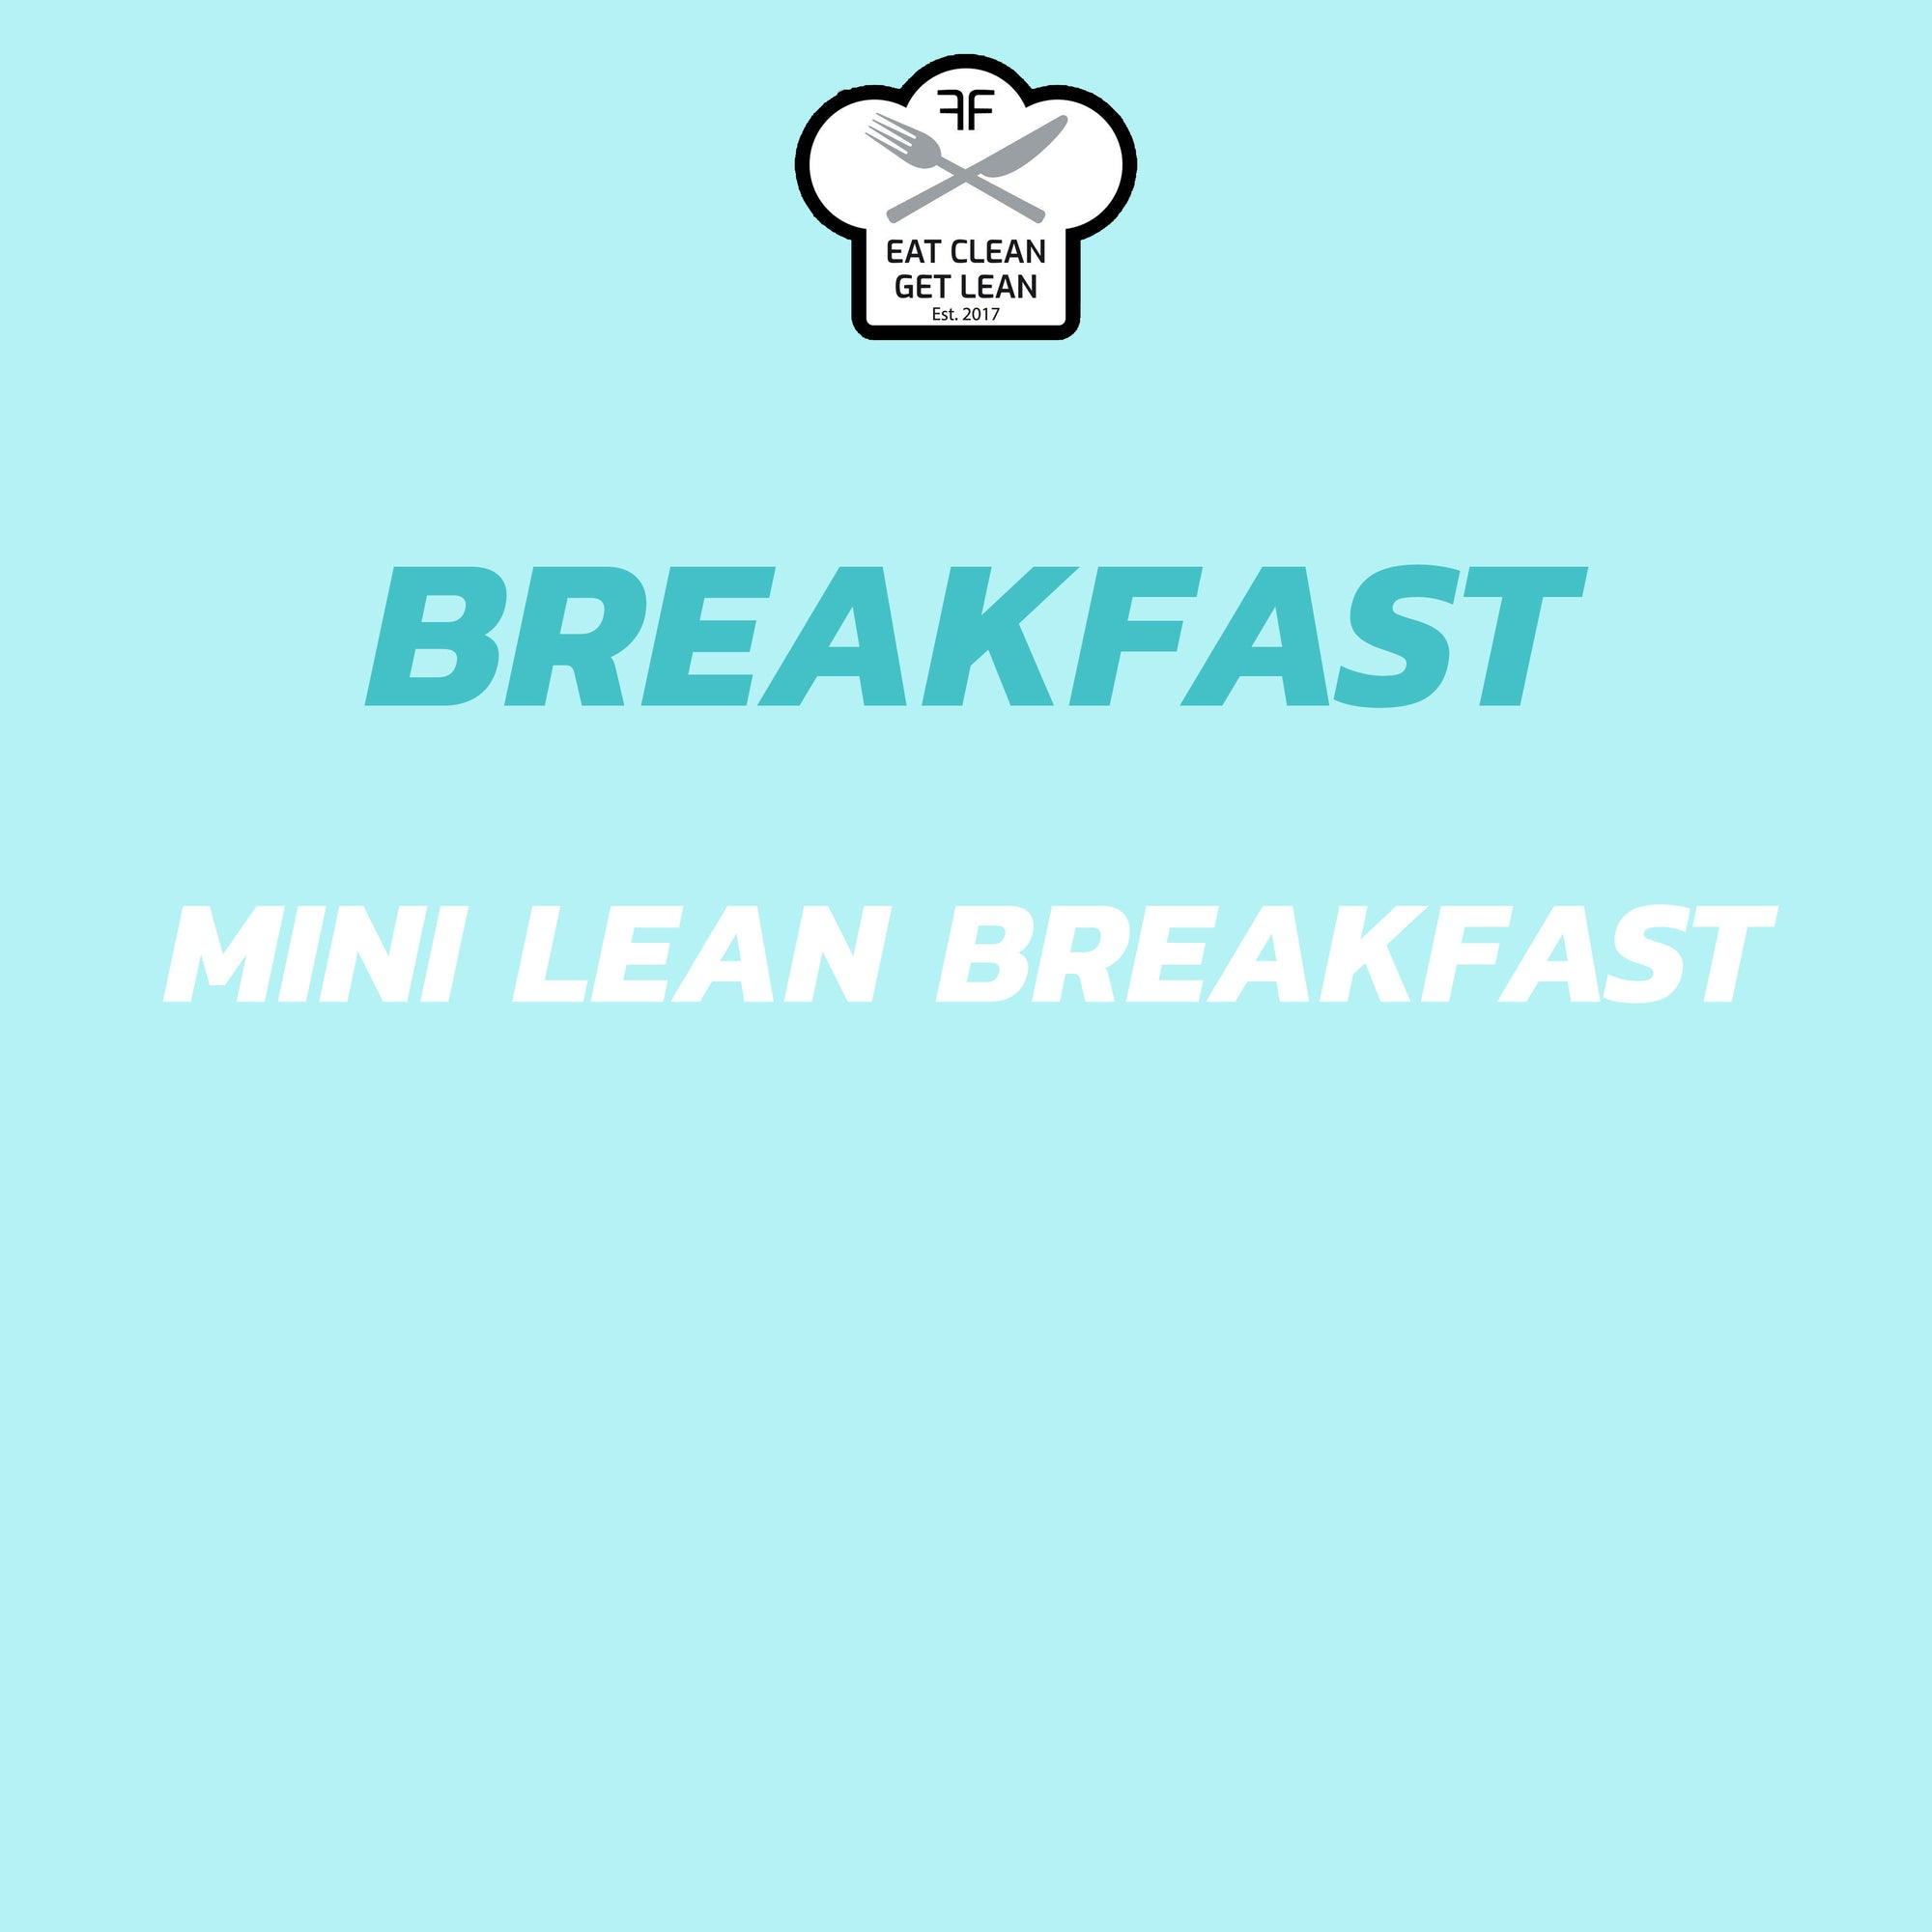 Breakfast - Mini Lean Breakfast